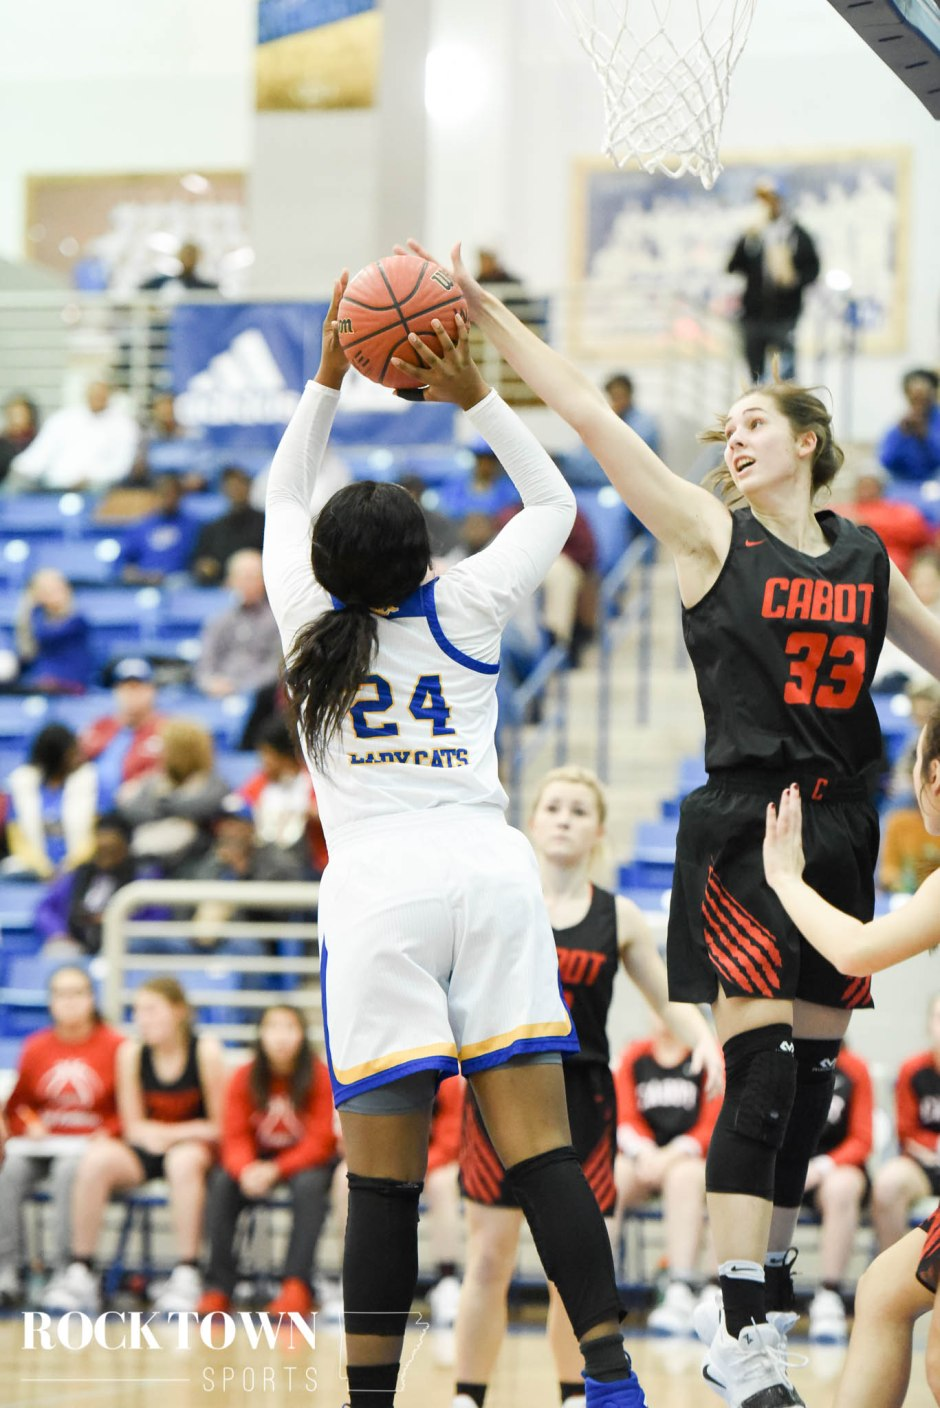 nlr_cabot_basketball_2019_(int)-11